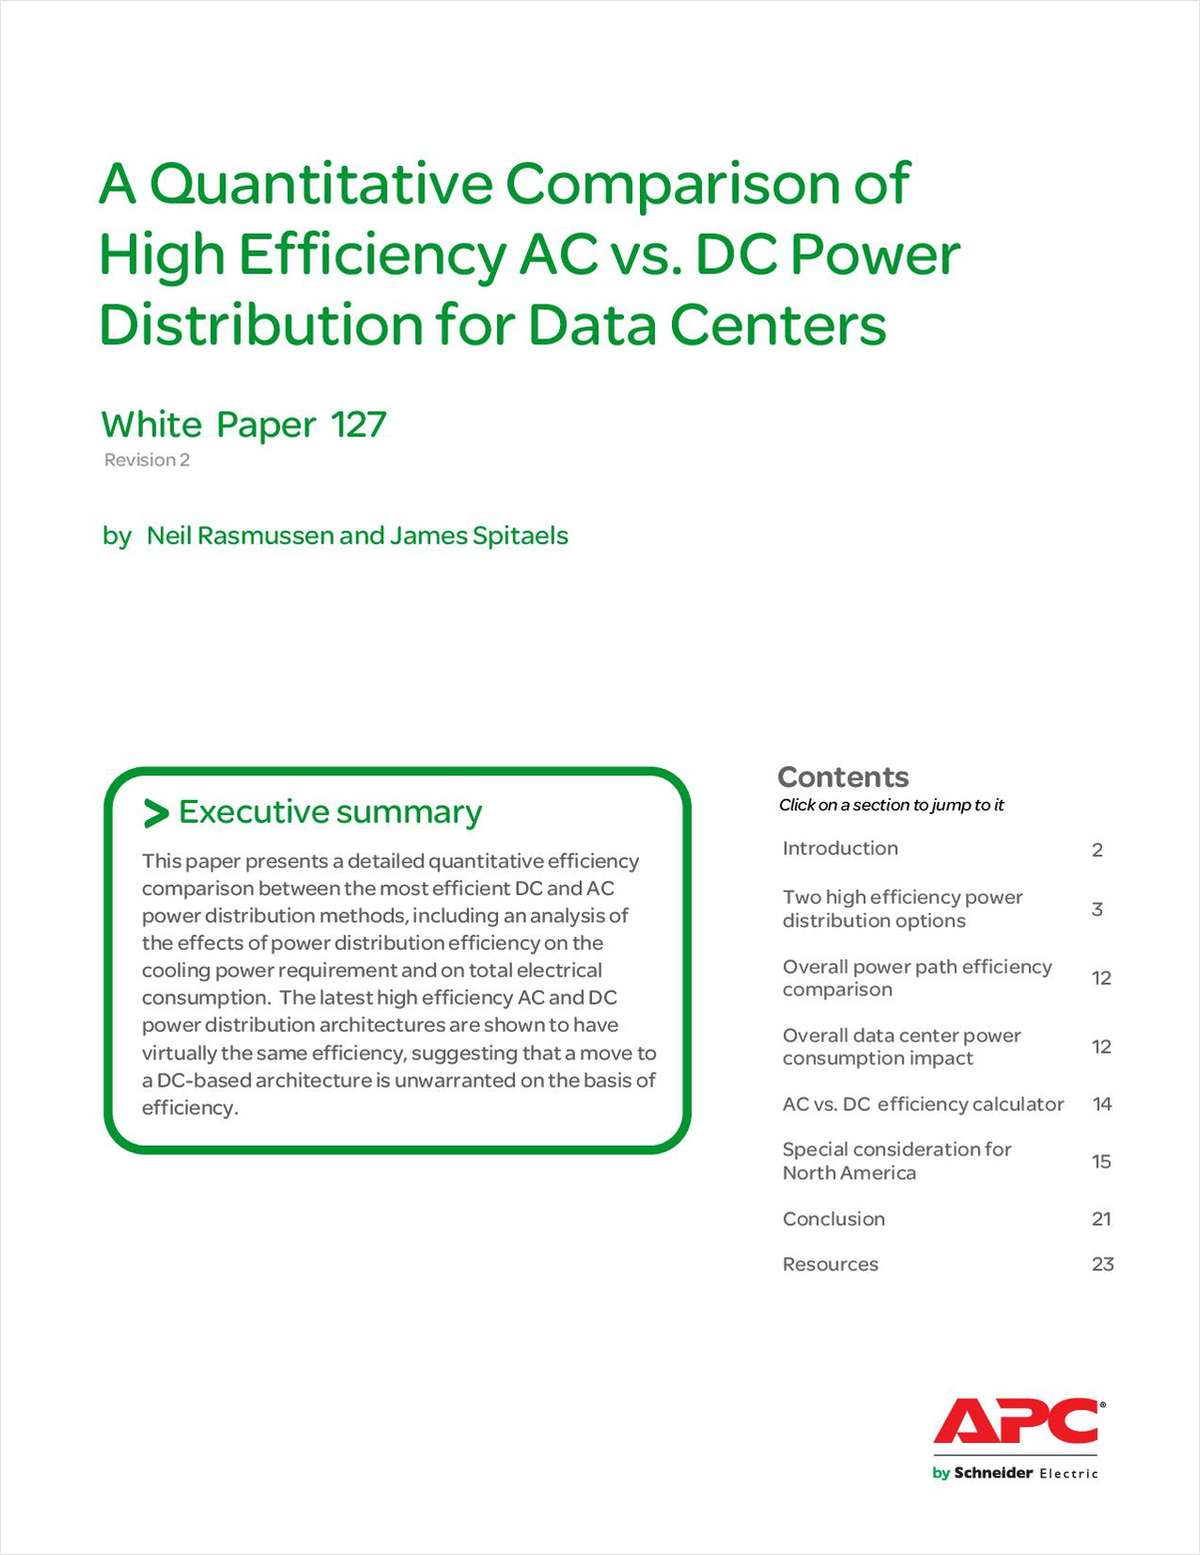 A Quantitative Comparison of High Efficiency AC vs. DC Power Distribution for Data Centers